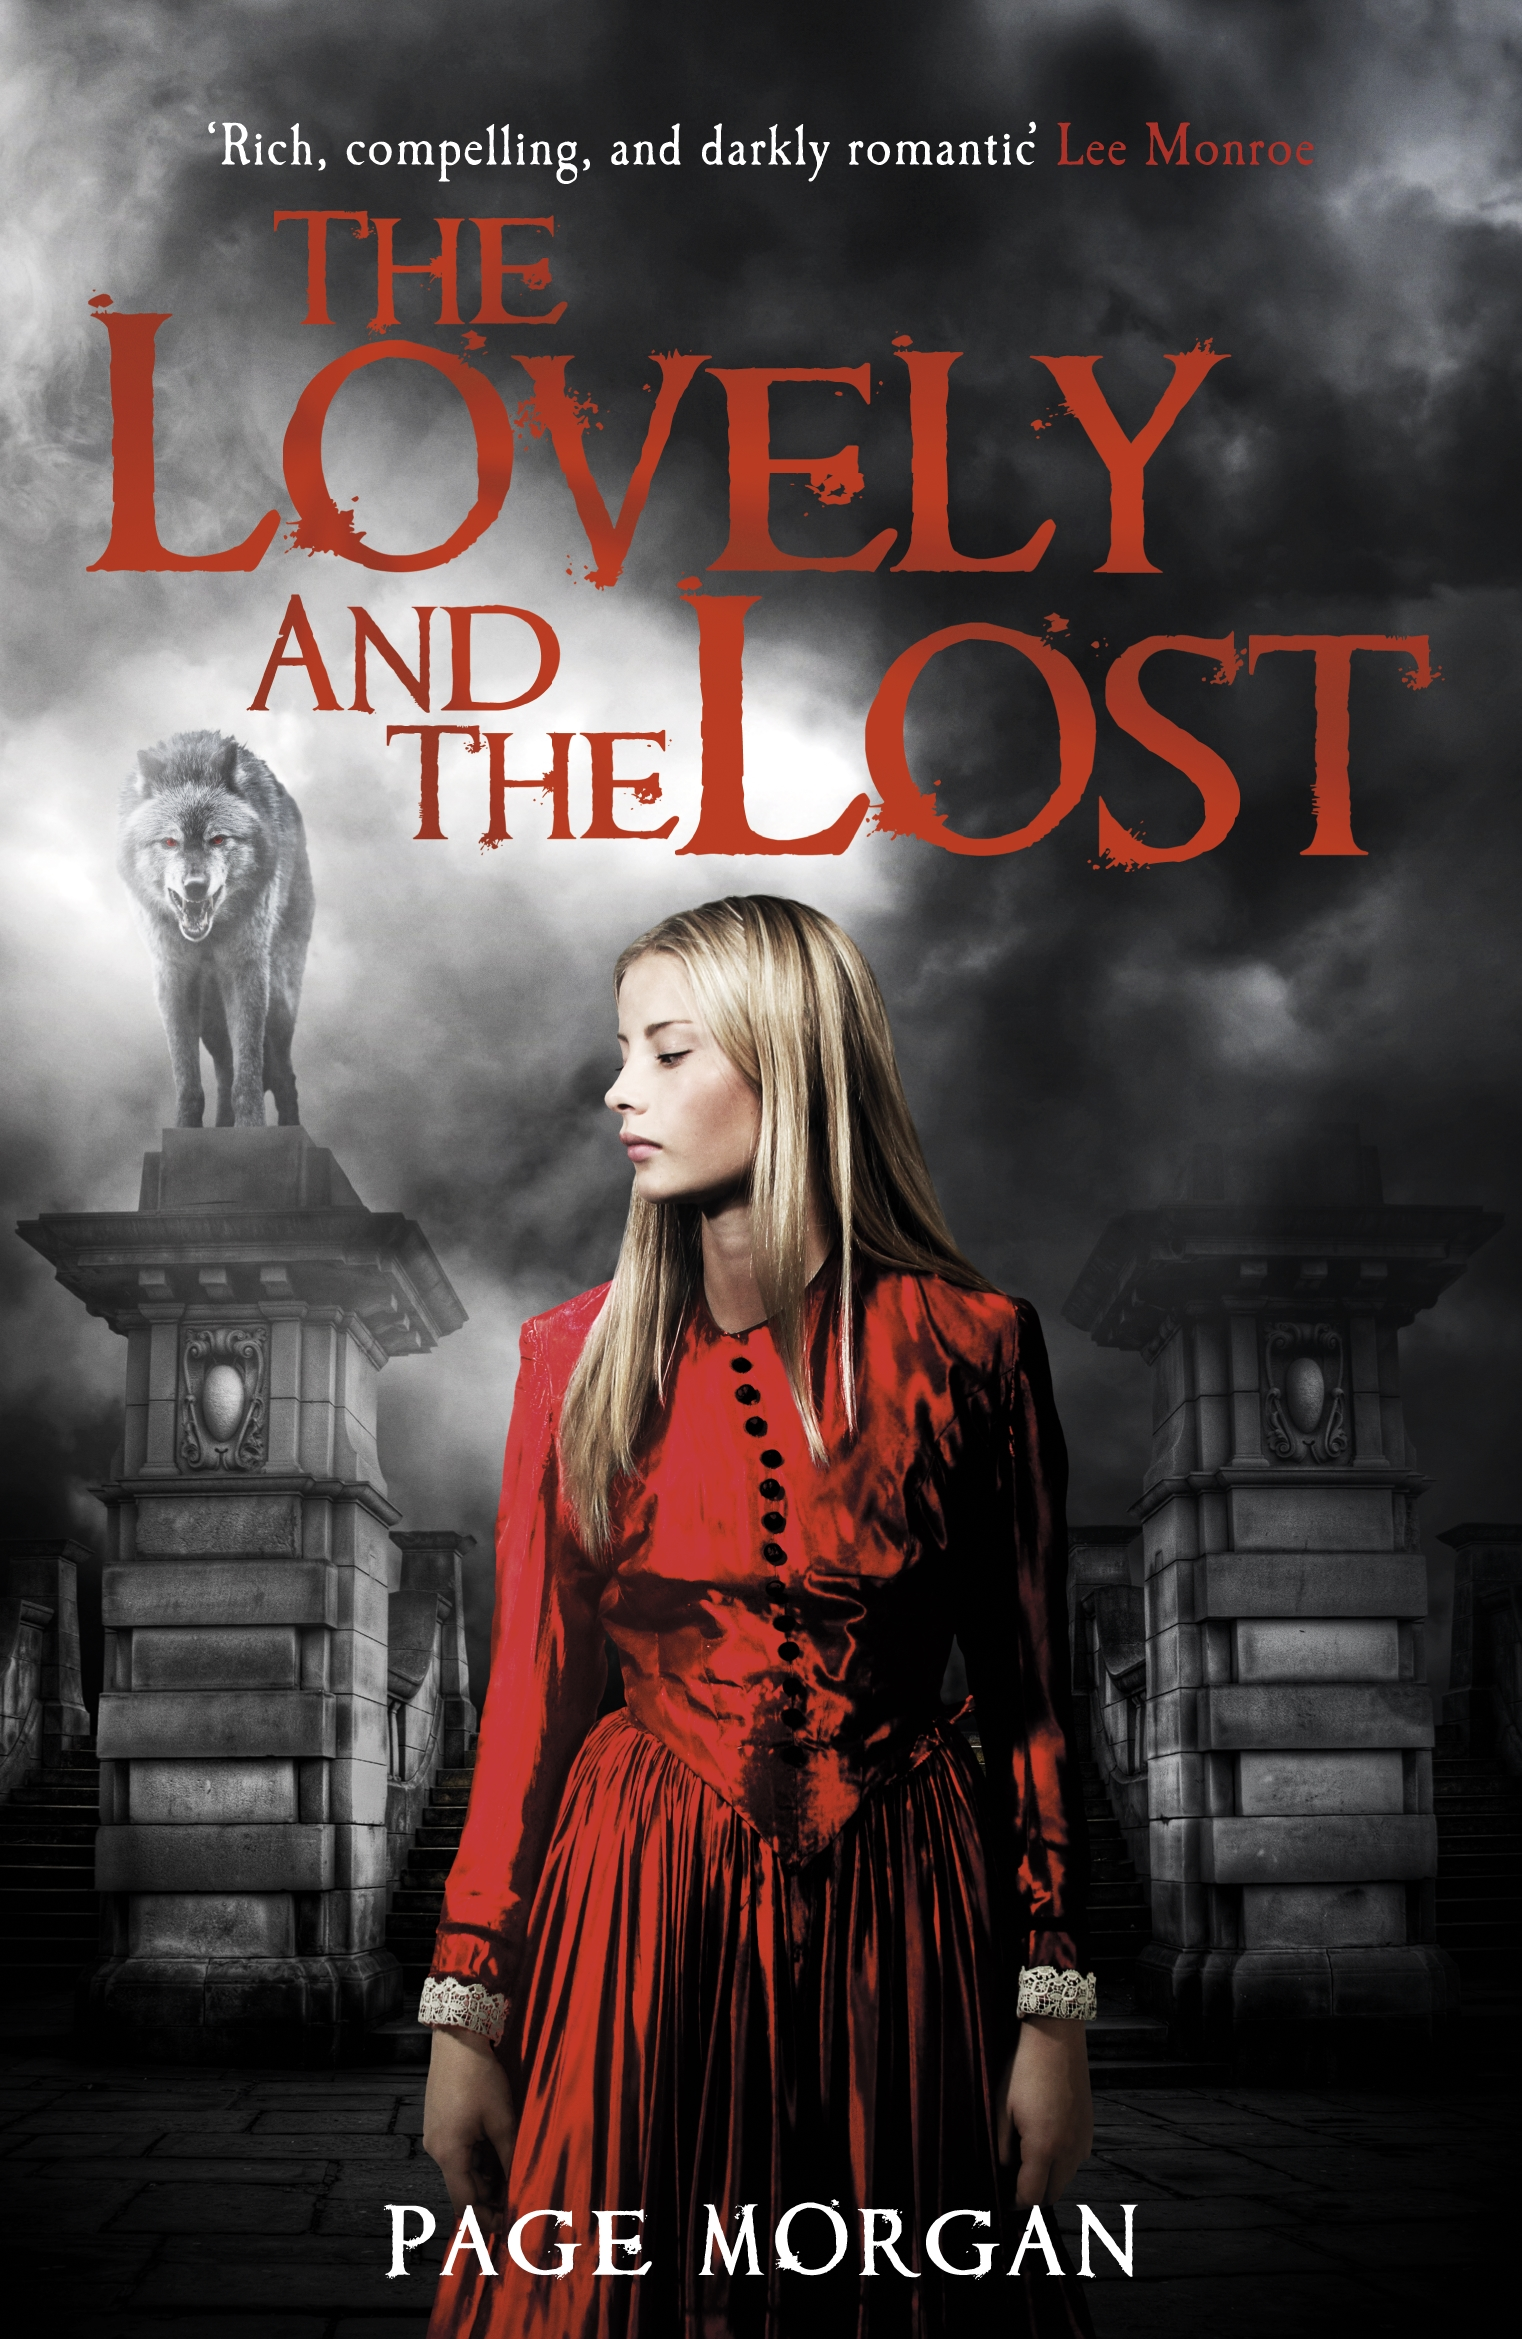 The Lovely and the Lost by Page Morgan